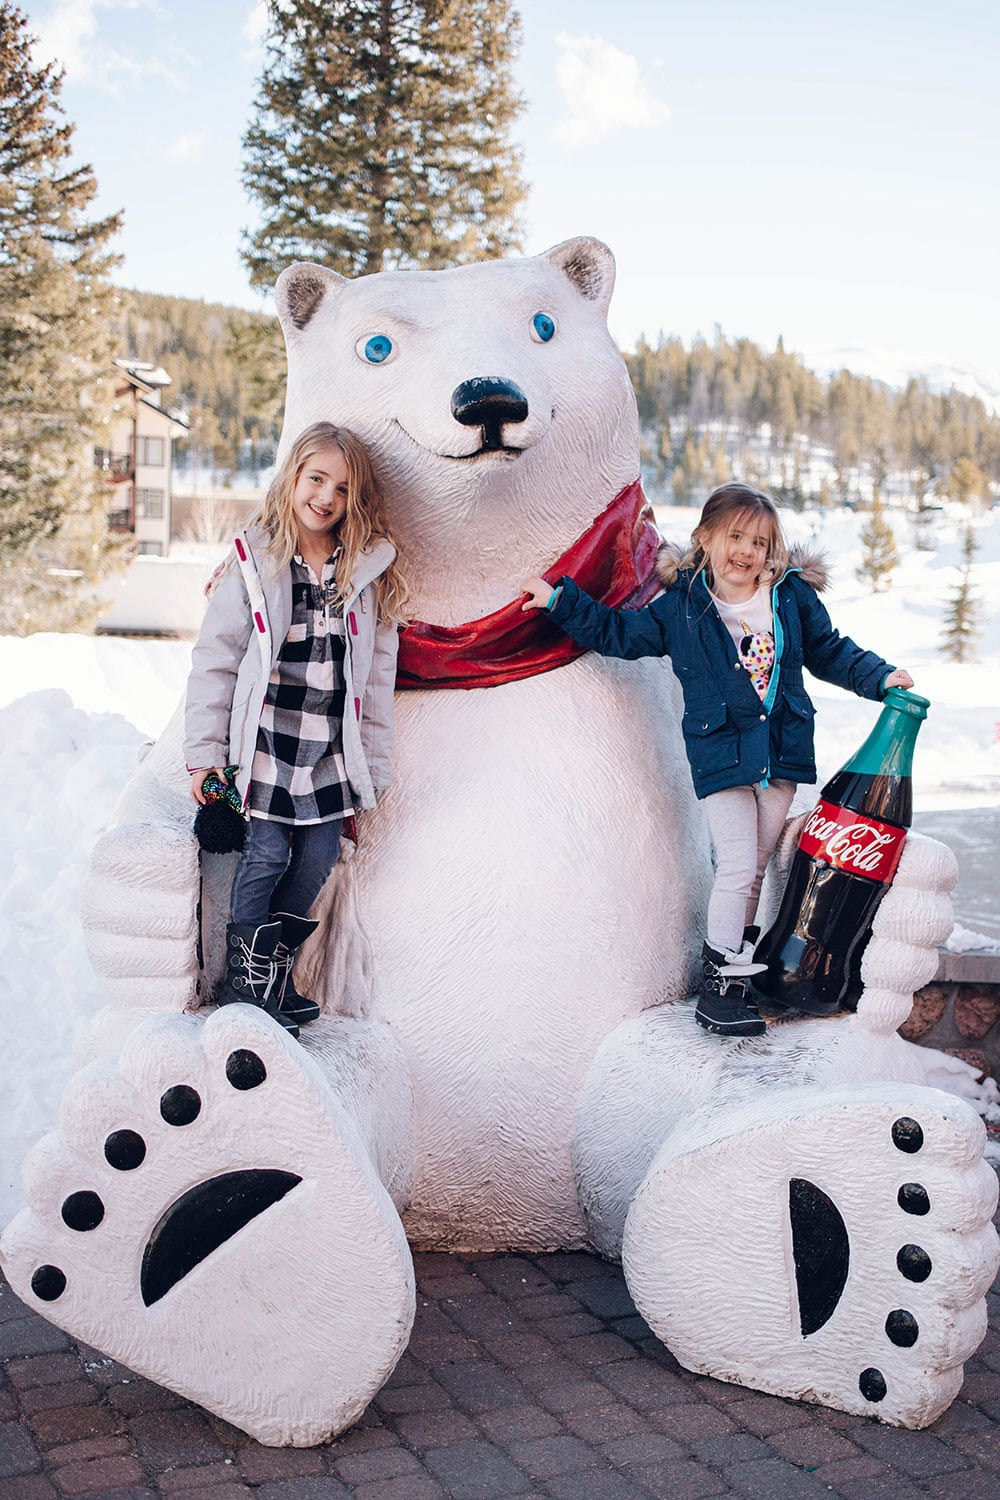 Houston blogger Meg O. shares her ski trip with kids to Winter Park Colorado - the Winter Park Resort village is so cute with the Coca Cola Bear